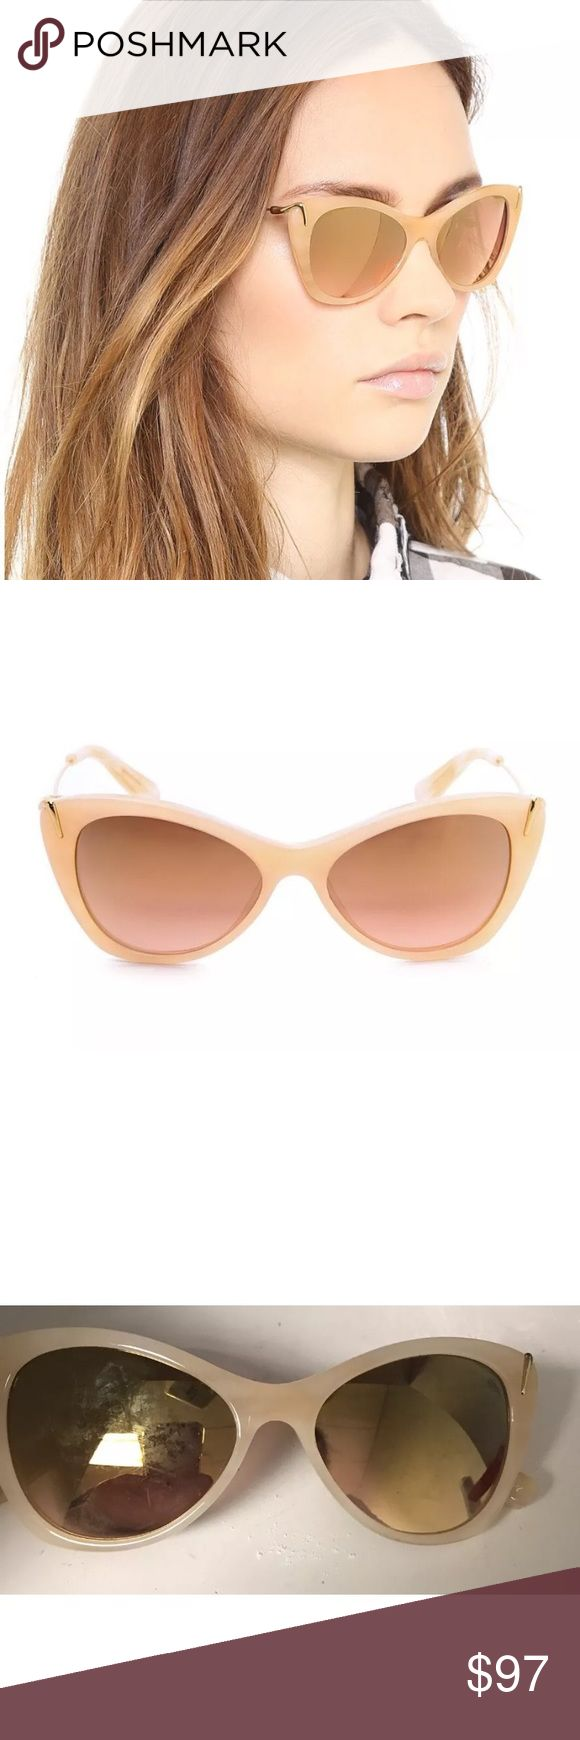 Elizabeth and James Sunglasses Beige Mirrored The Filmore Sunglasses by Elizabeth and James Beige with gold accents and Mirrored lenses. Great condition Elizabeth and James Accessories Sunglasses